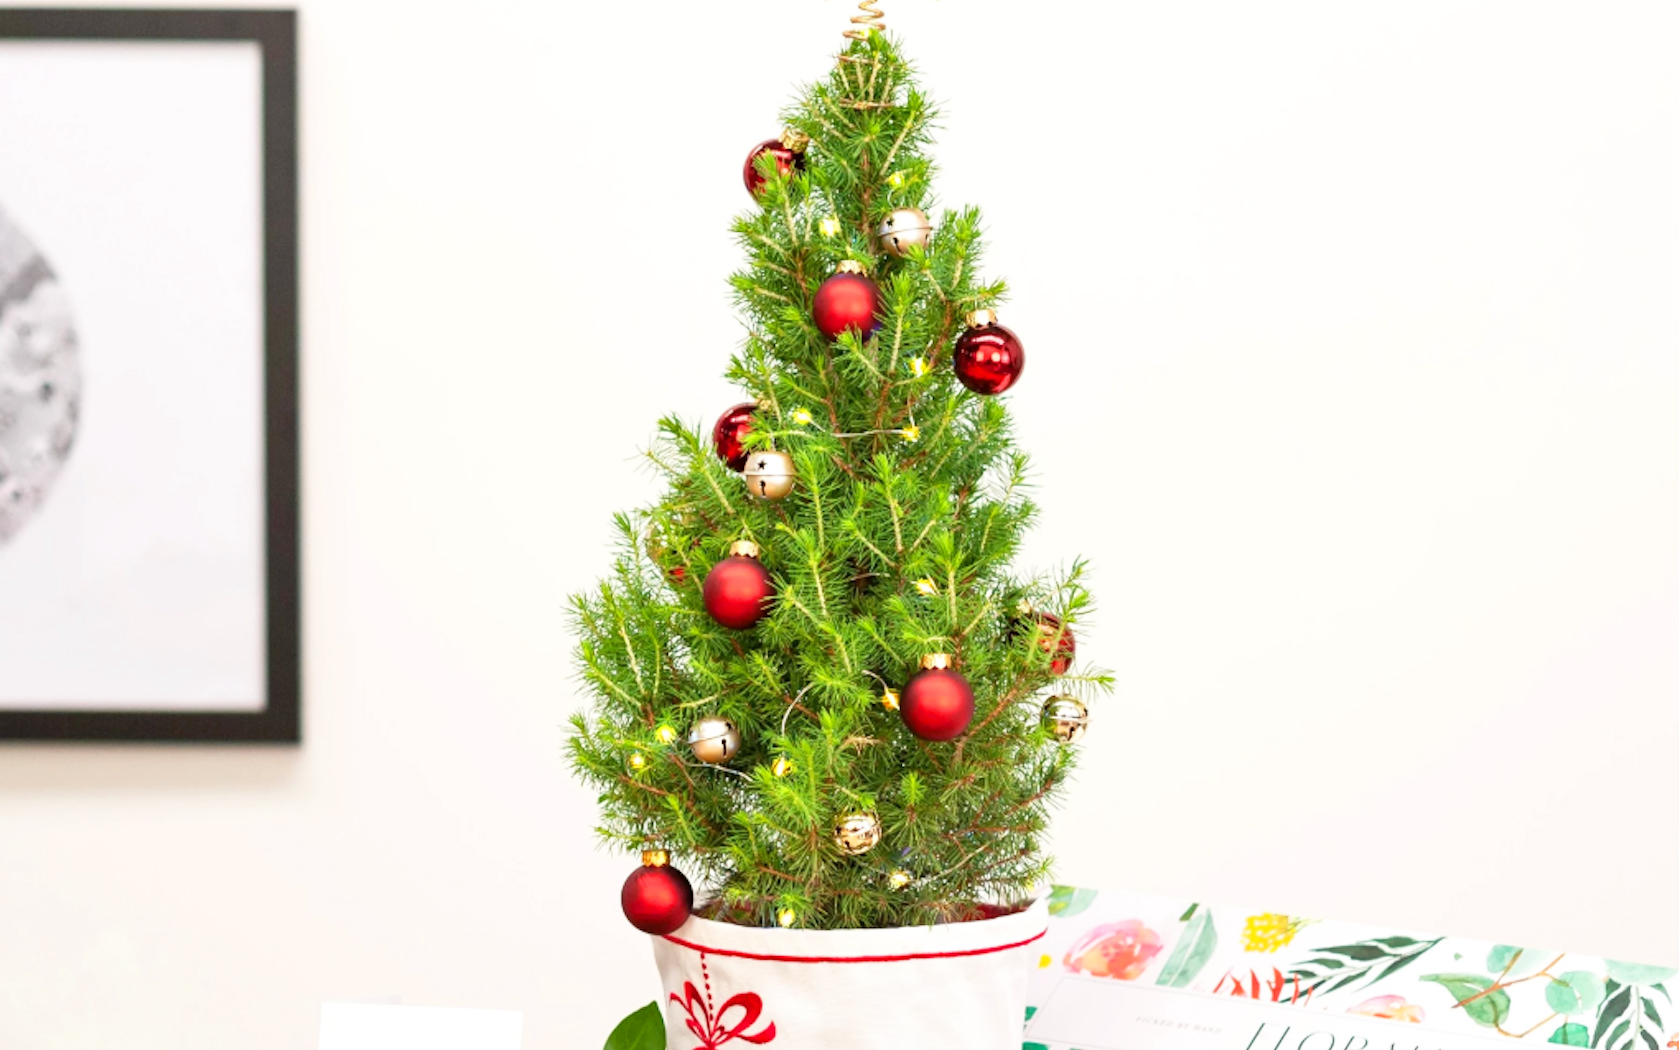 Christmas Tree Delivery Floraly Will Send A Cute Lil Pine To Your Door